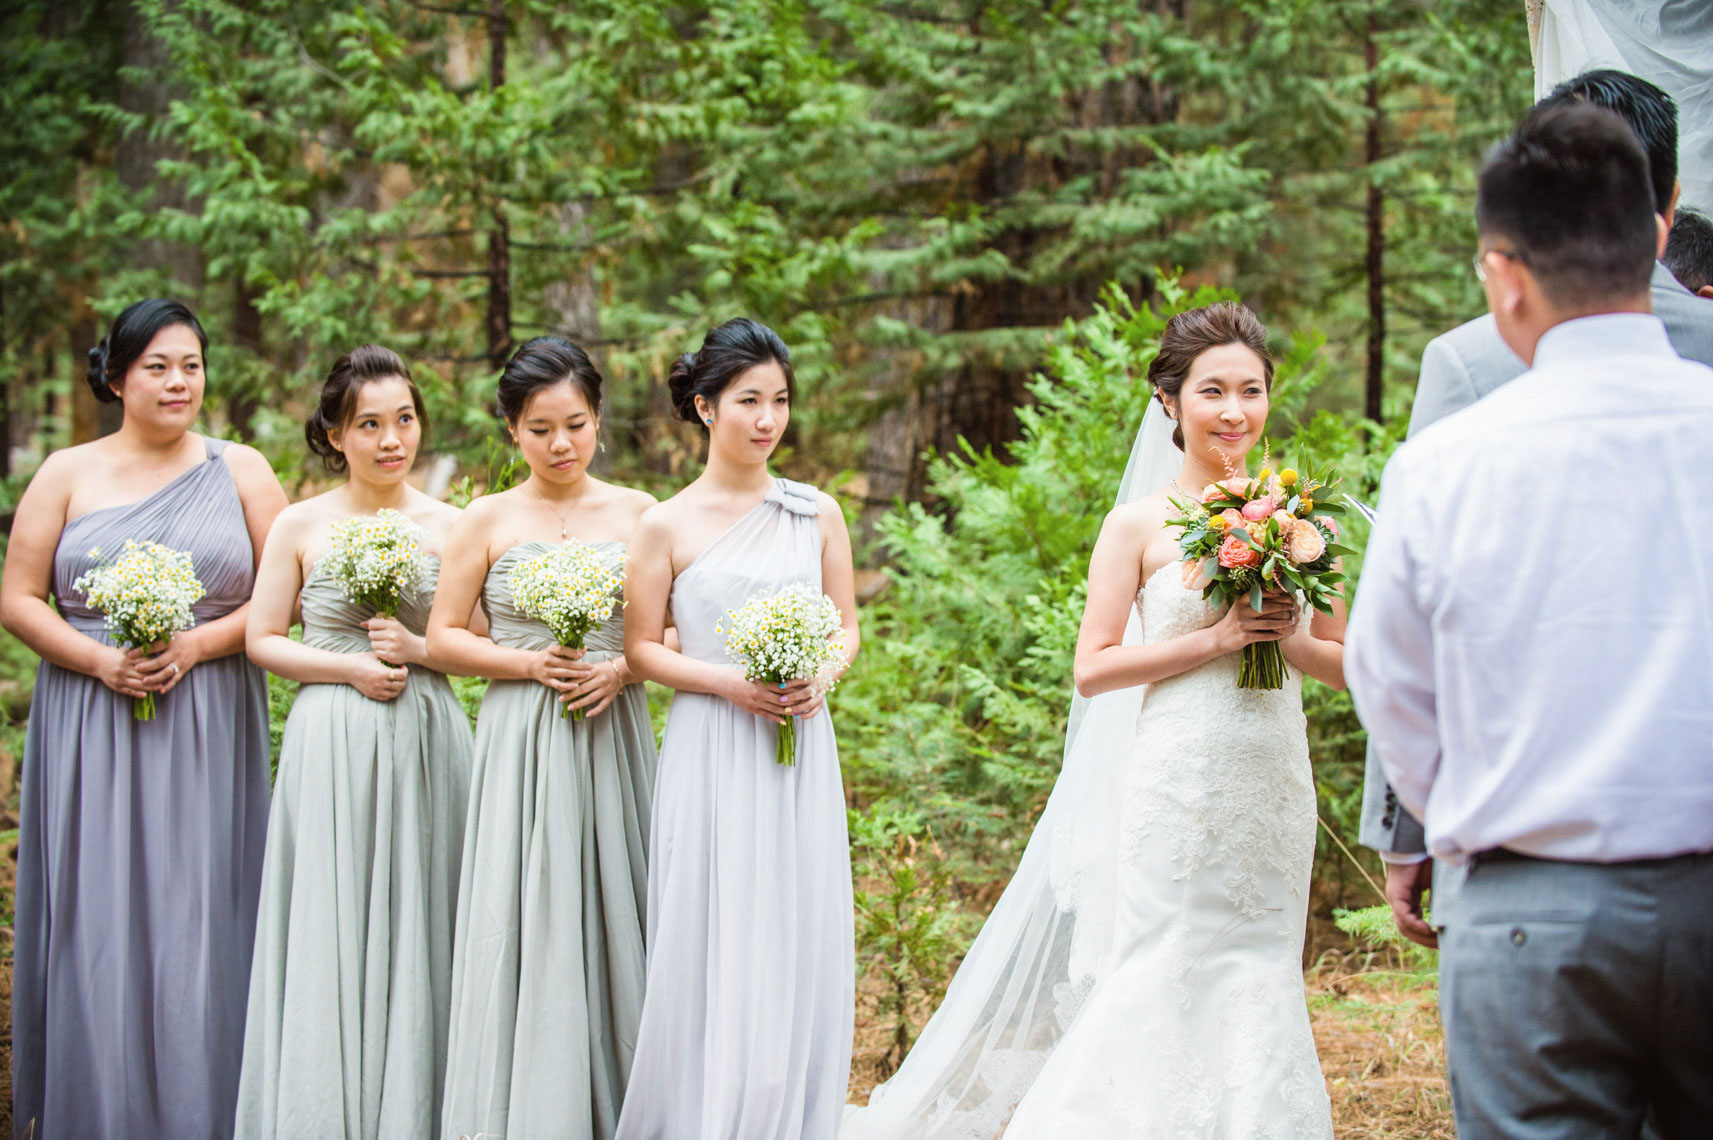 yosemite_wedding_evergreen_lodge_wedding_ceremony_rain